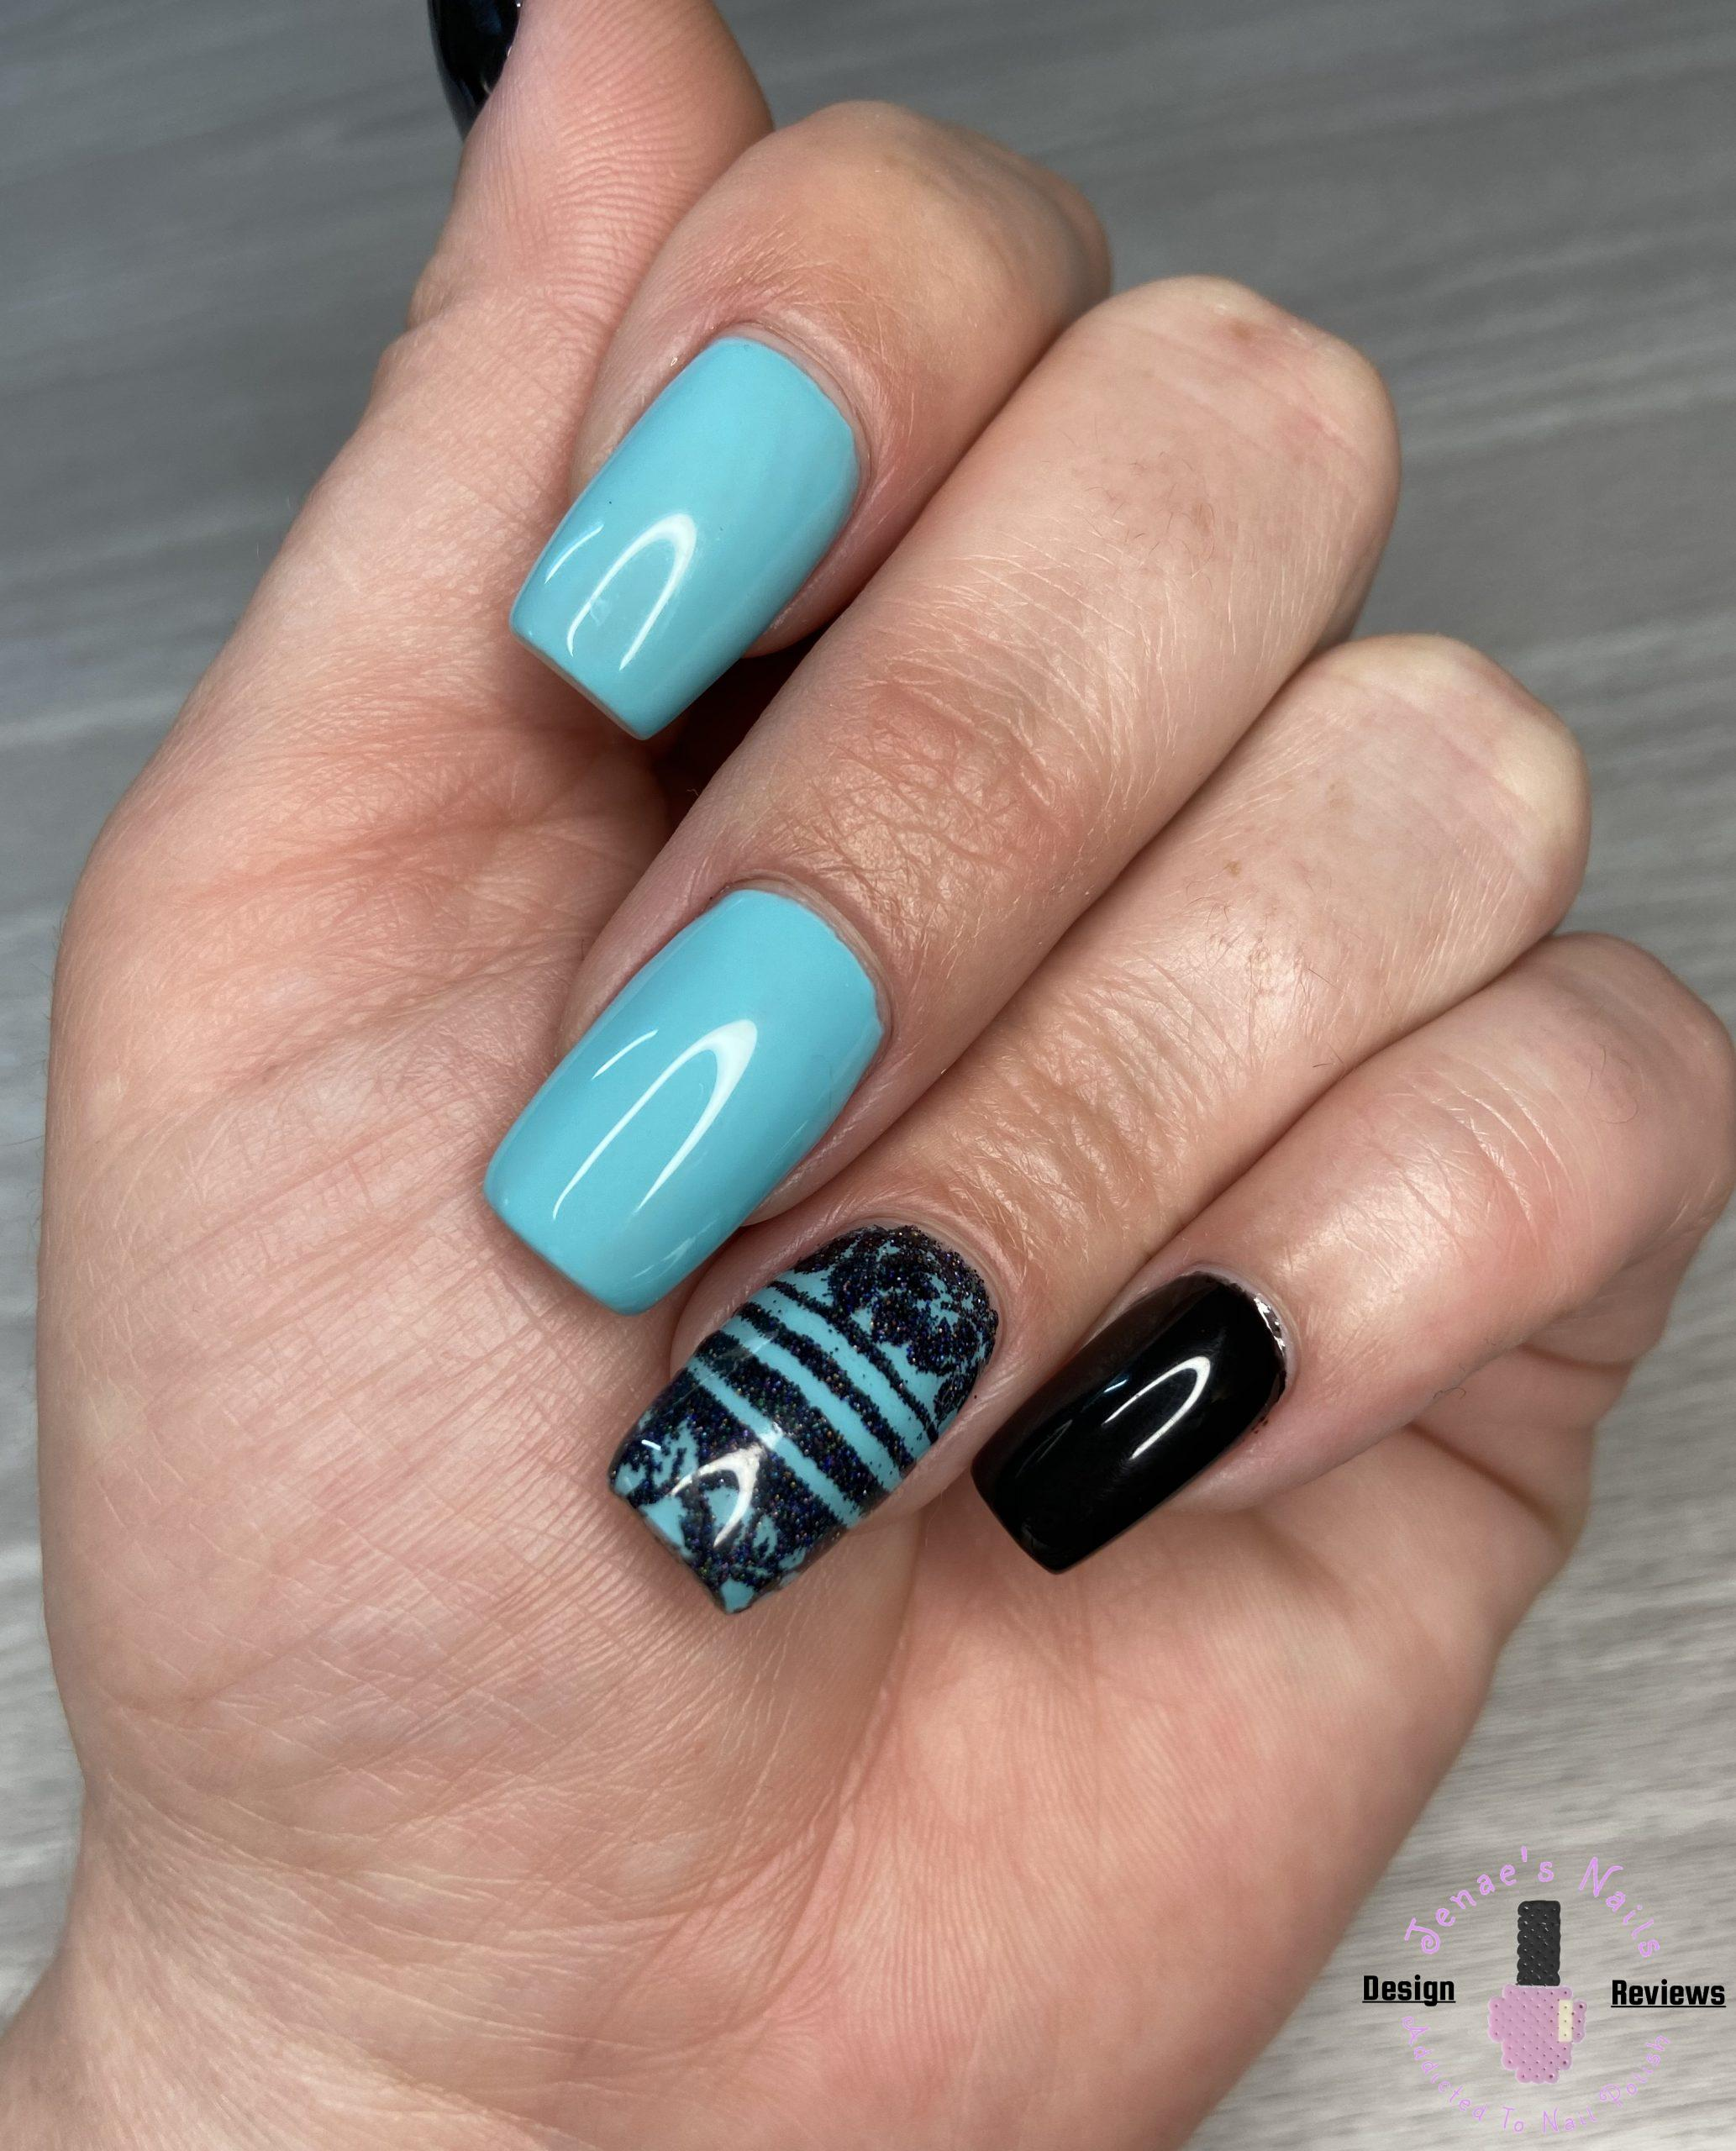 Black and Teal Nails